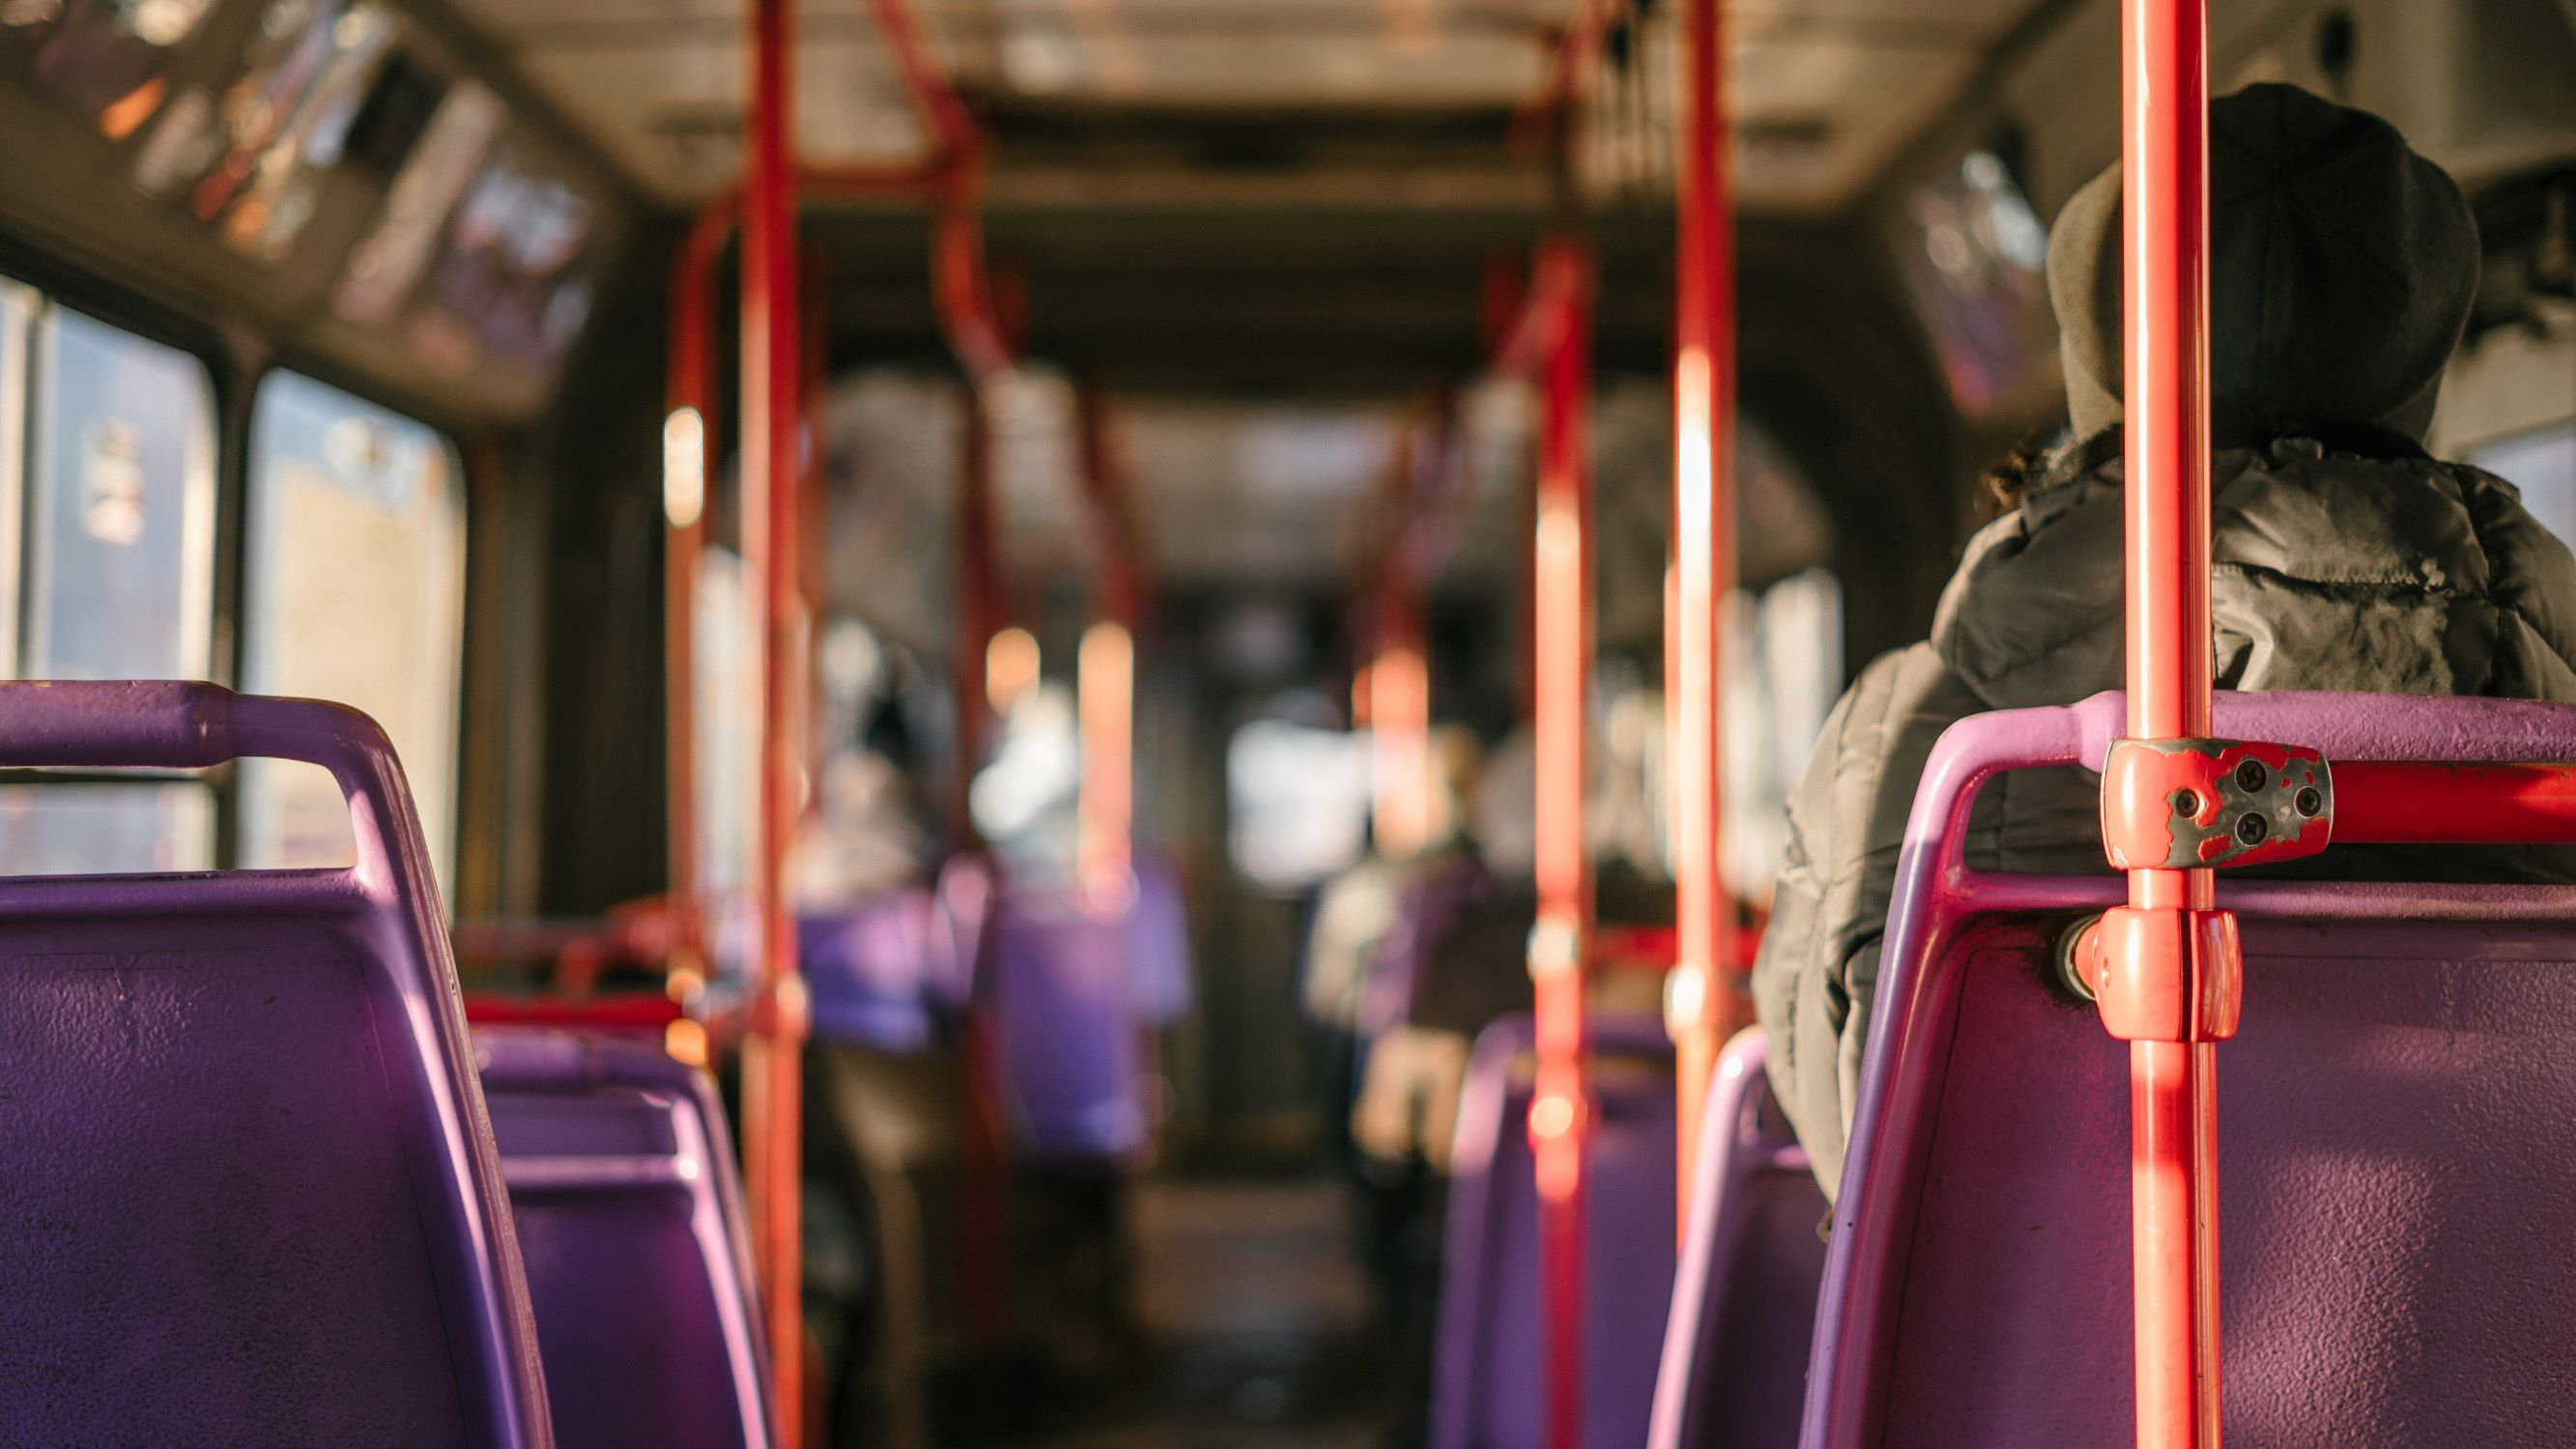 how to stay safe from coronavirus on public transport